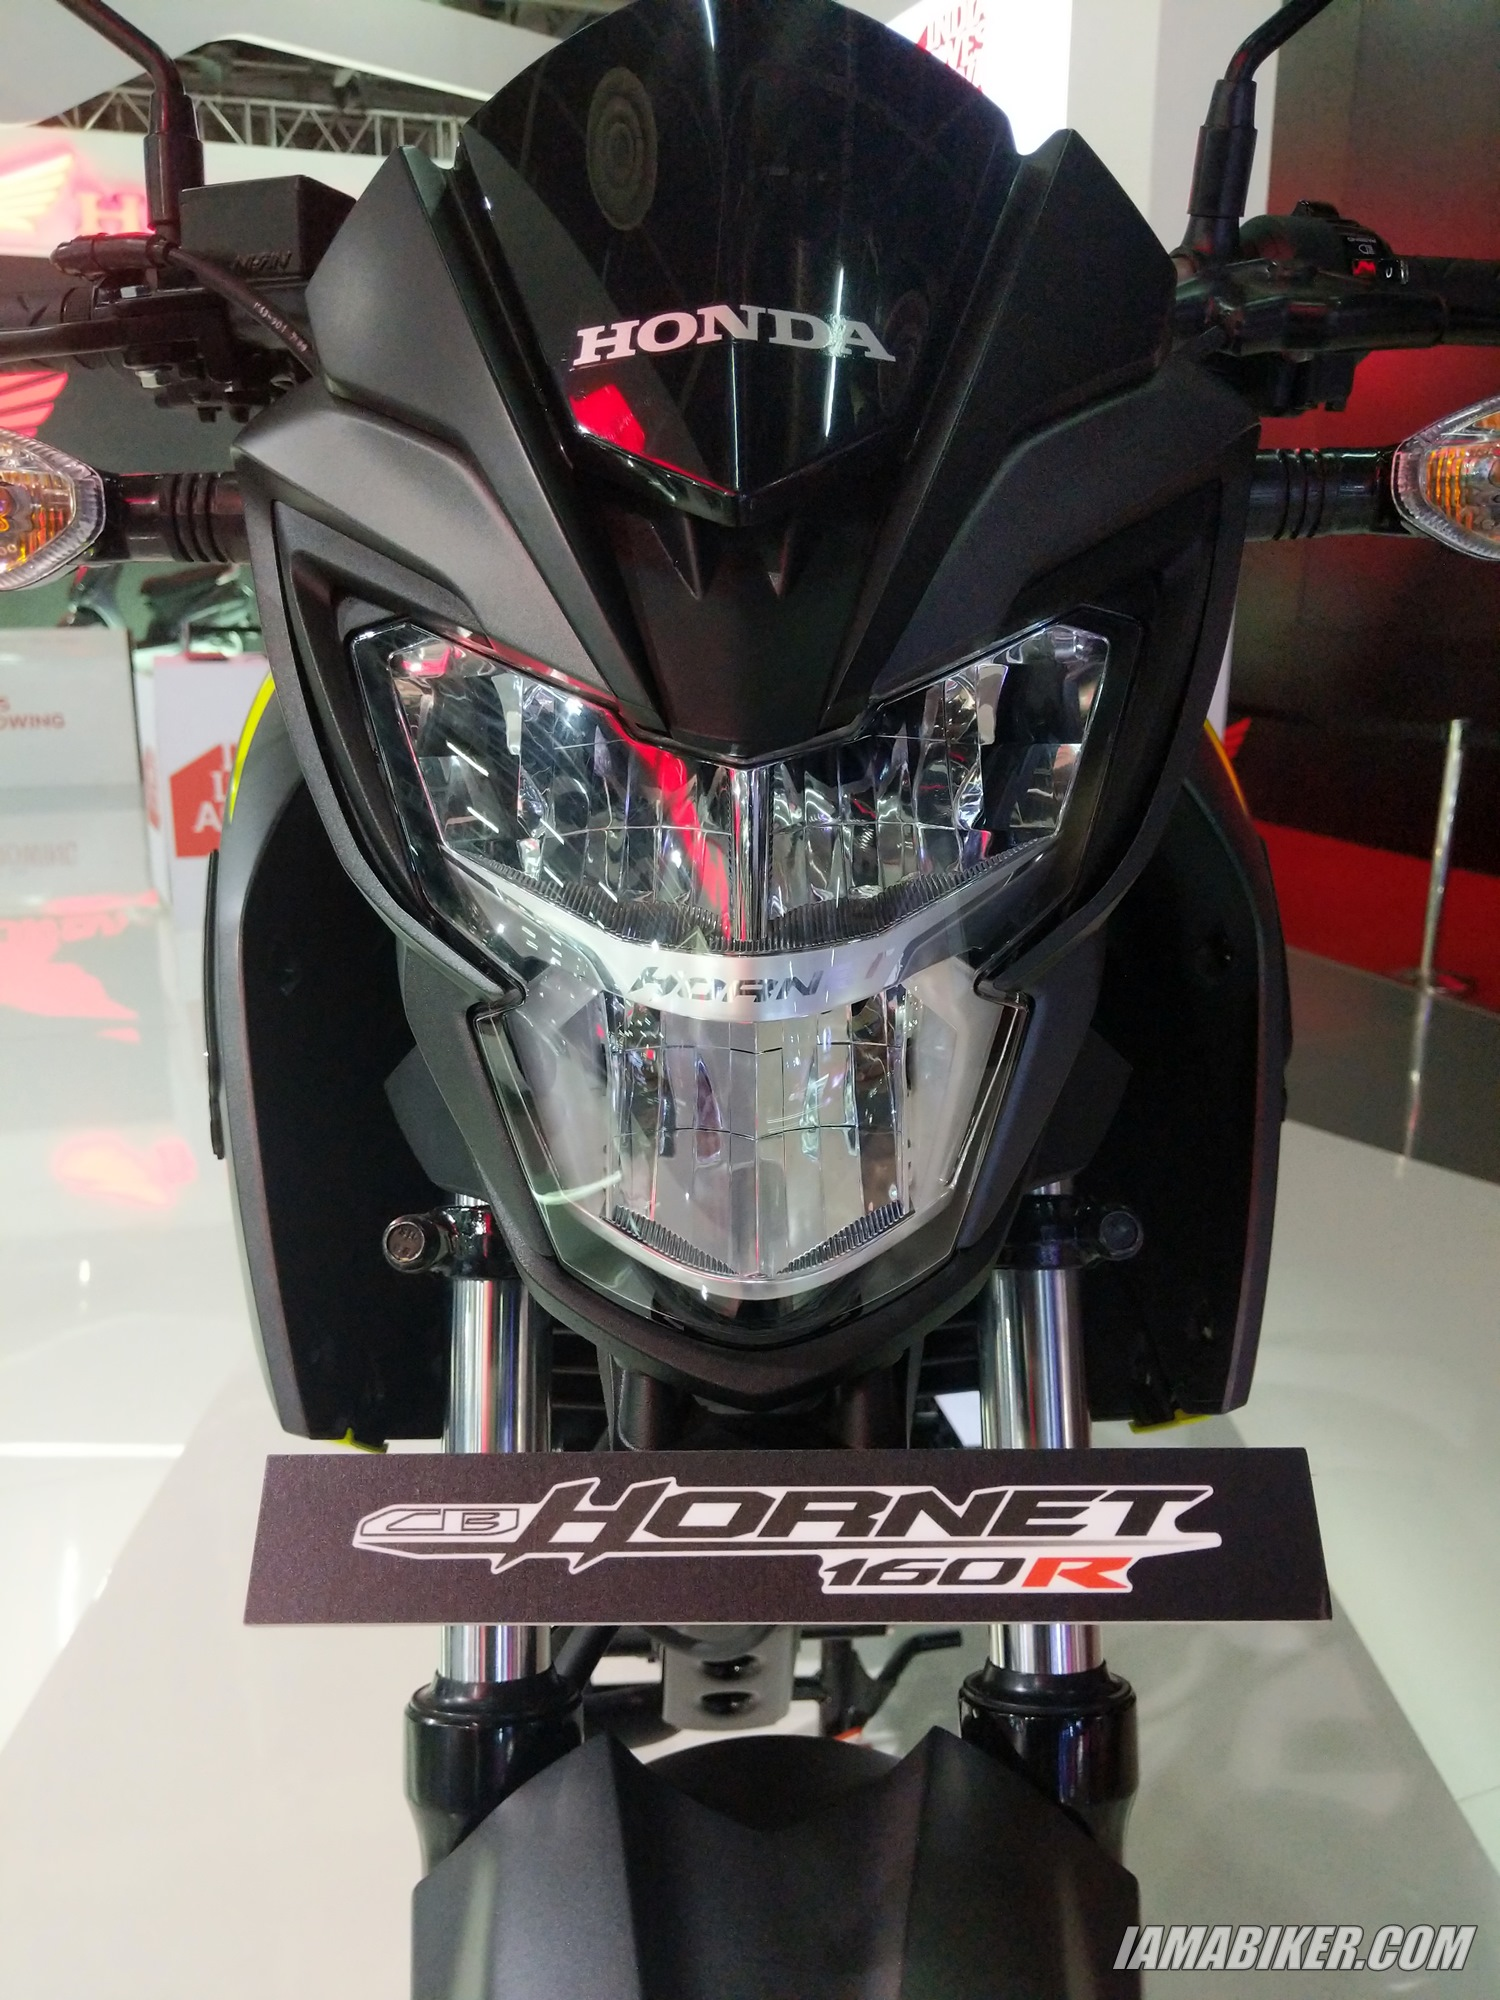 2018 Honda CB Hornet 160R LED headlight